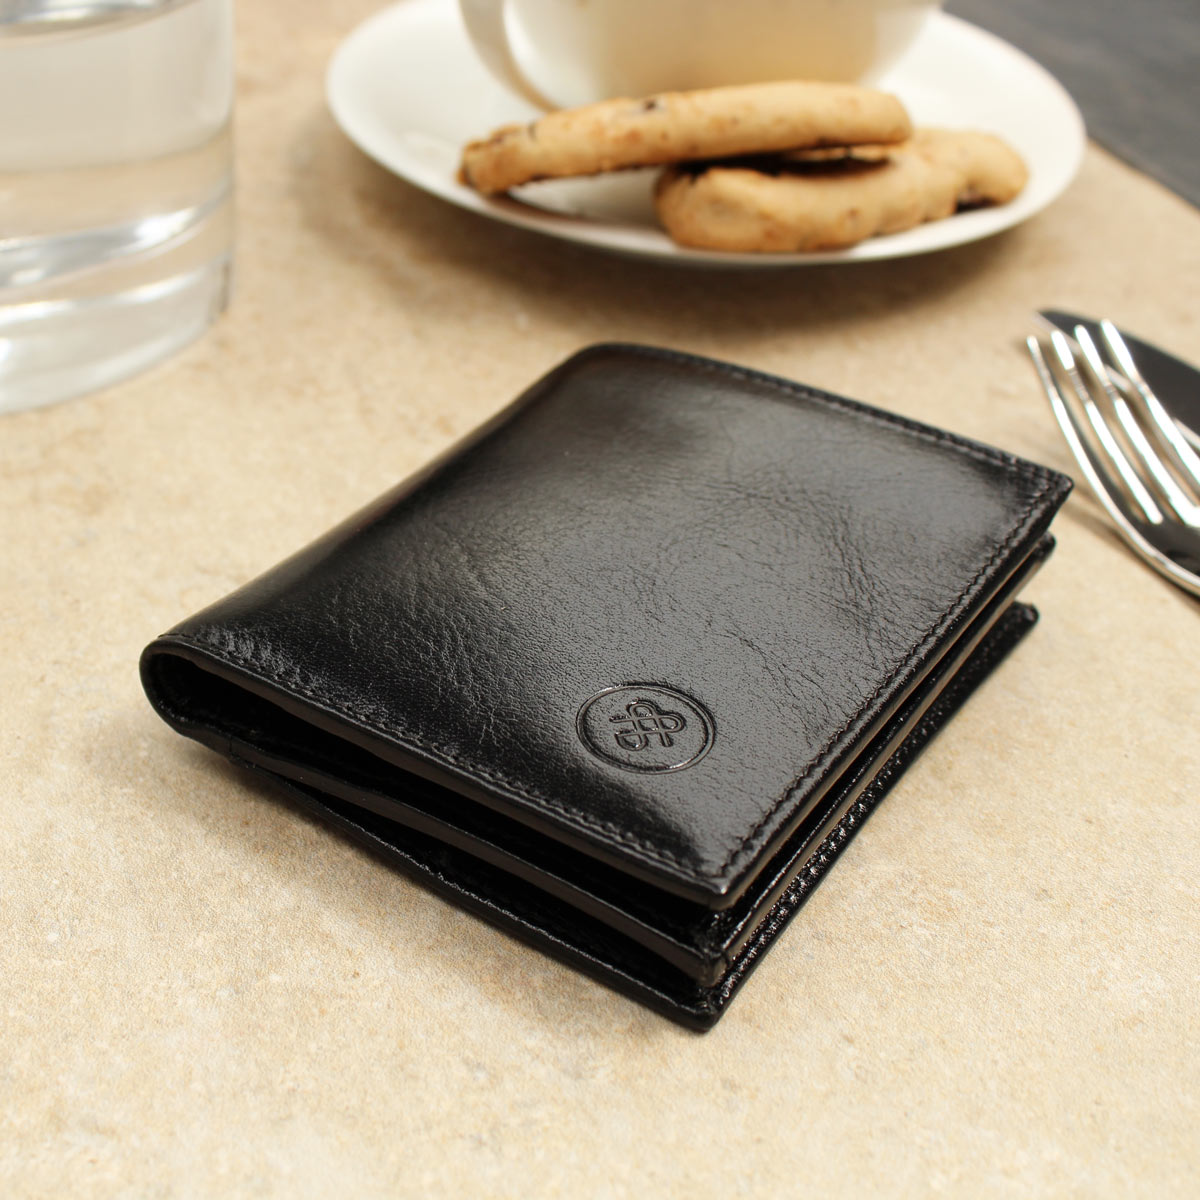 Image 8 of the 'Rocca' Black Veg-Tanned Leather Wallet